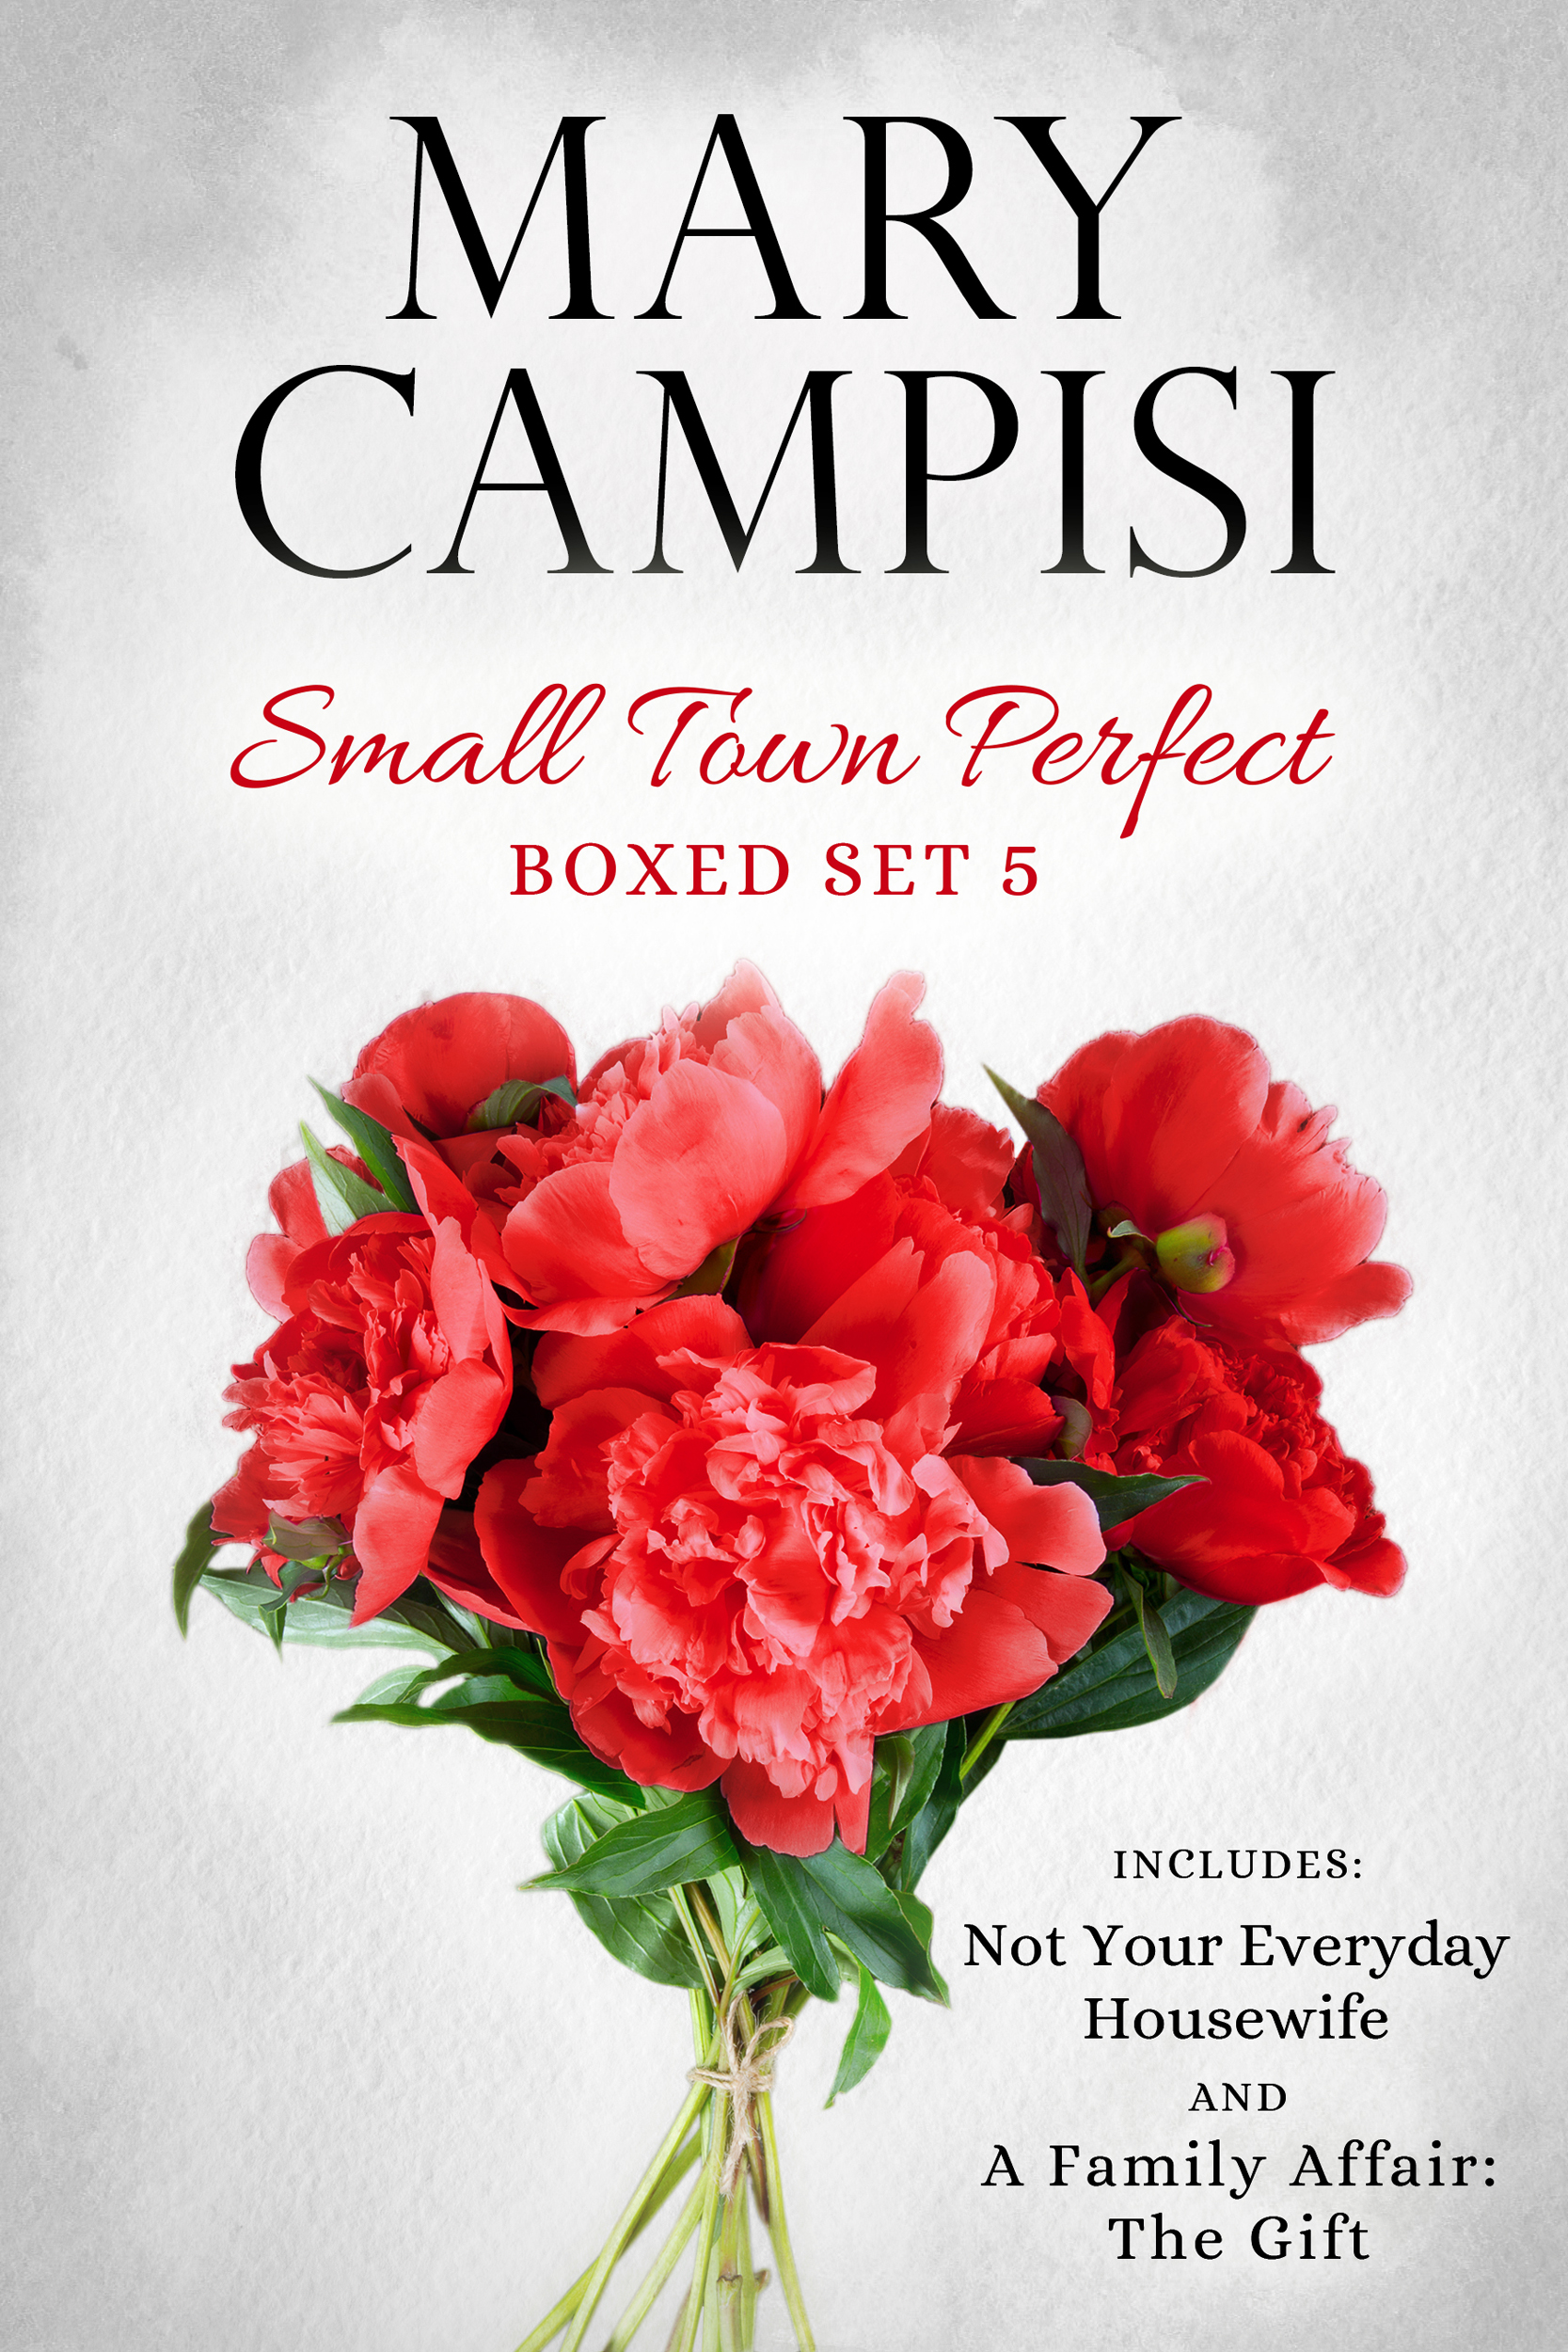 Small Town Perfect Boxed Set 5